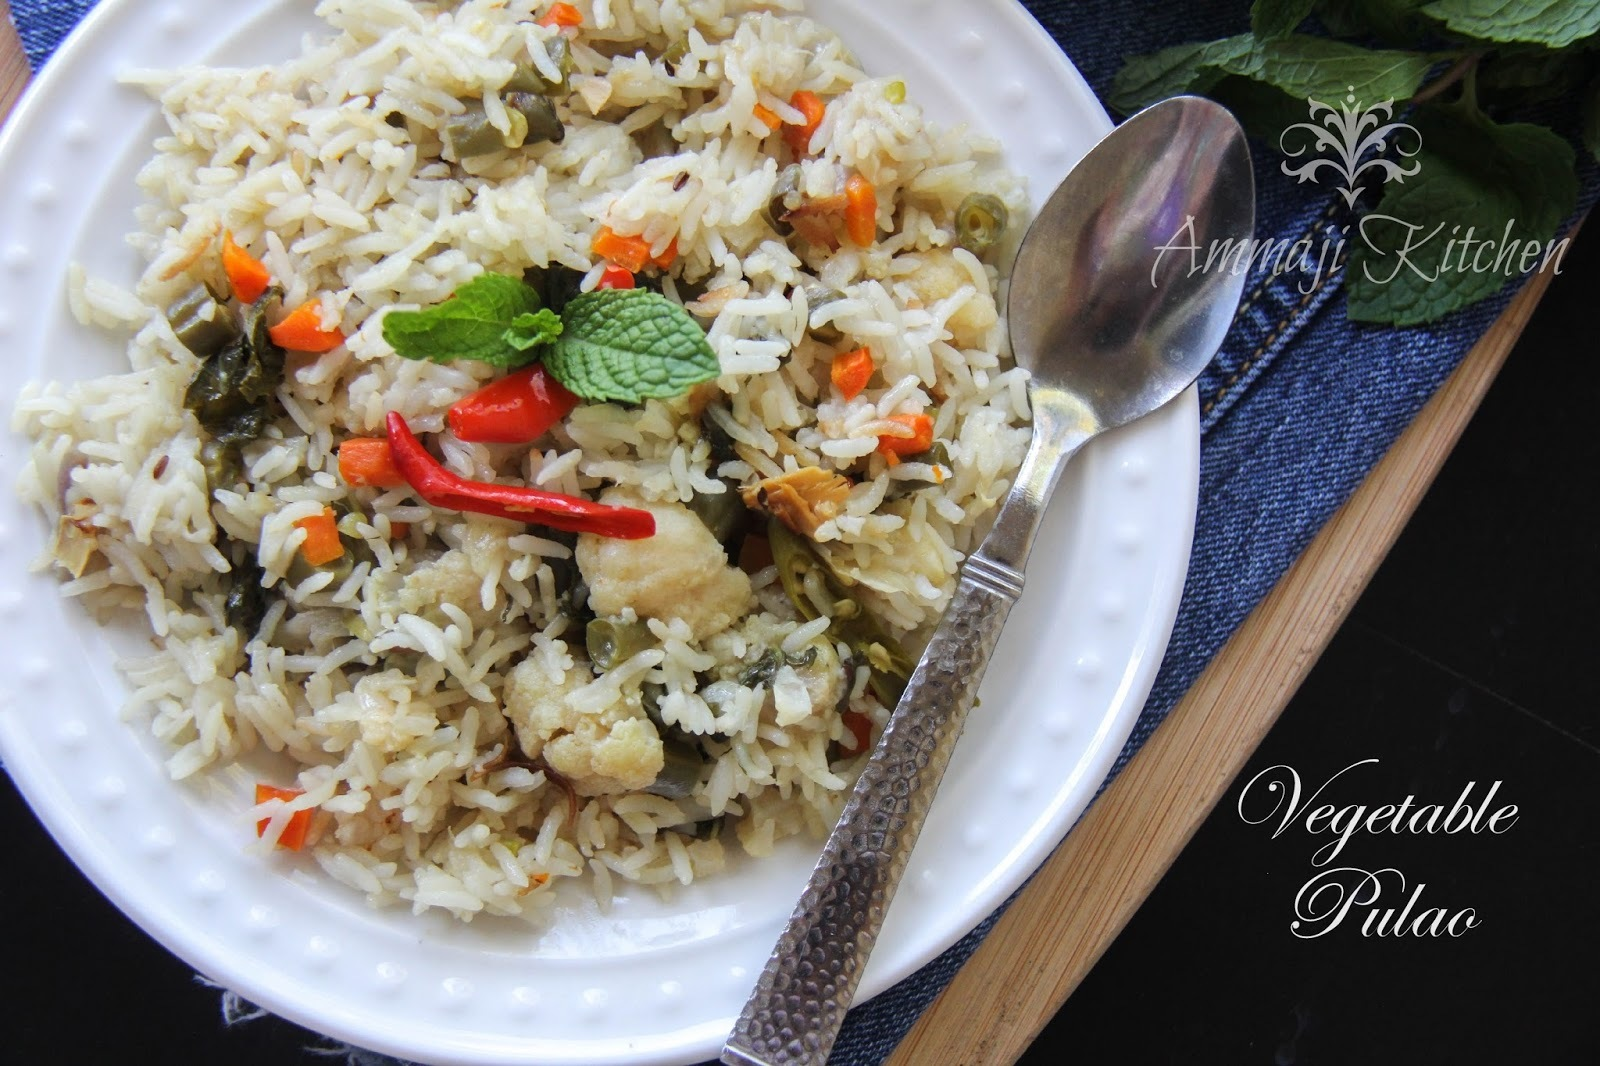 Vegetable pulao & Green Peas Potato Kurma